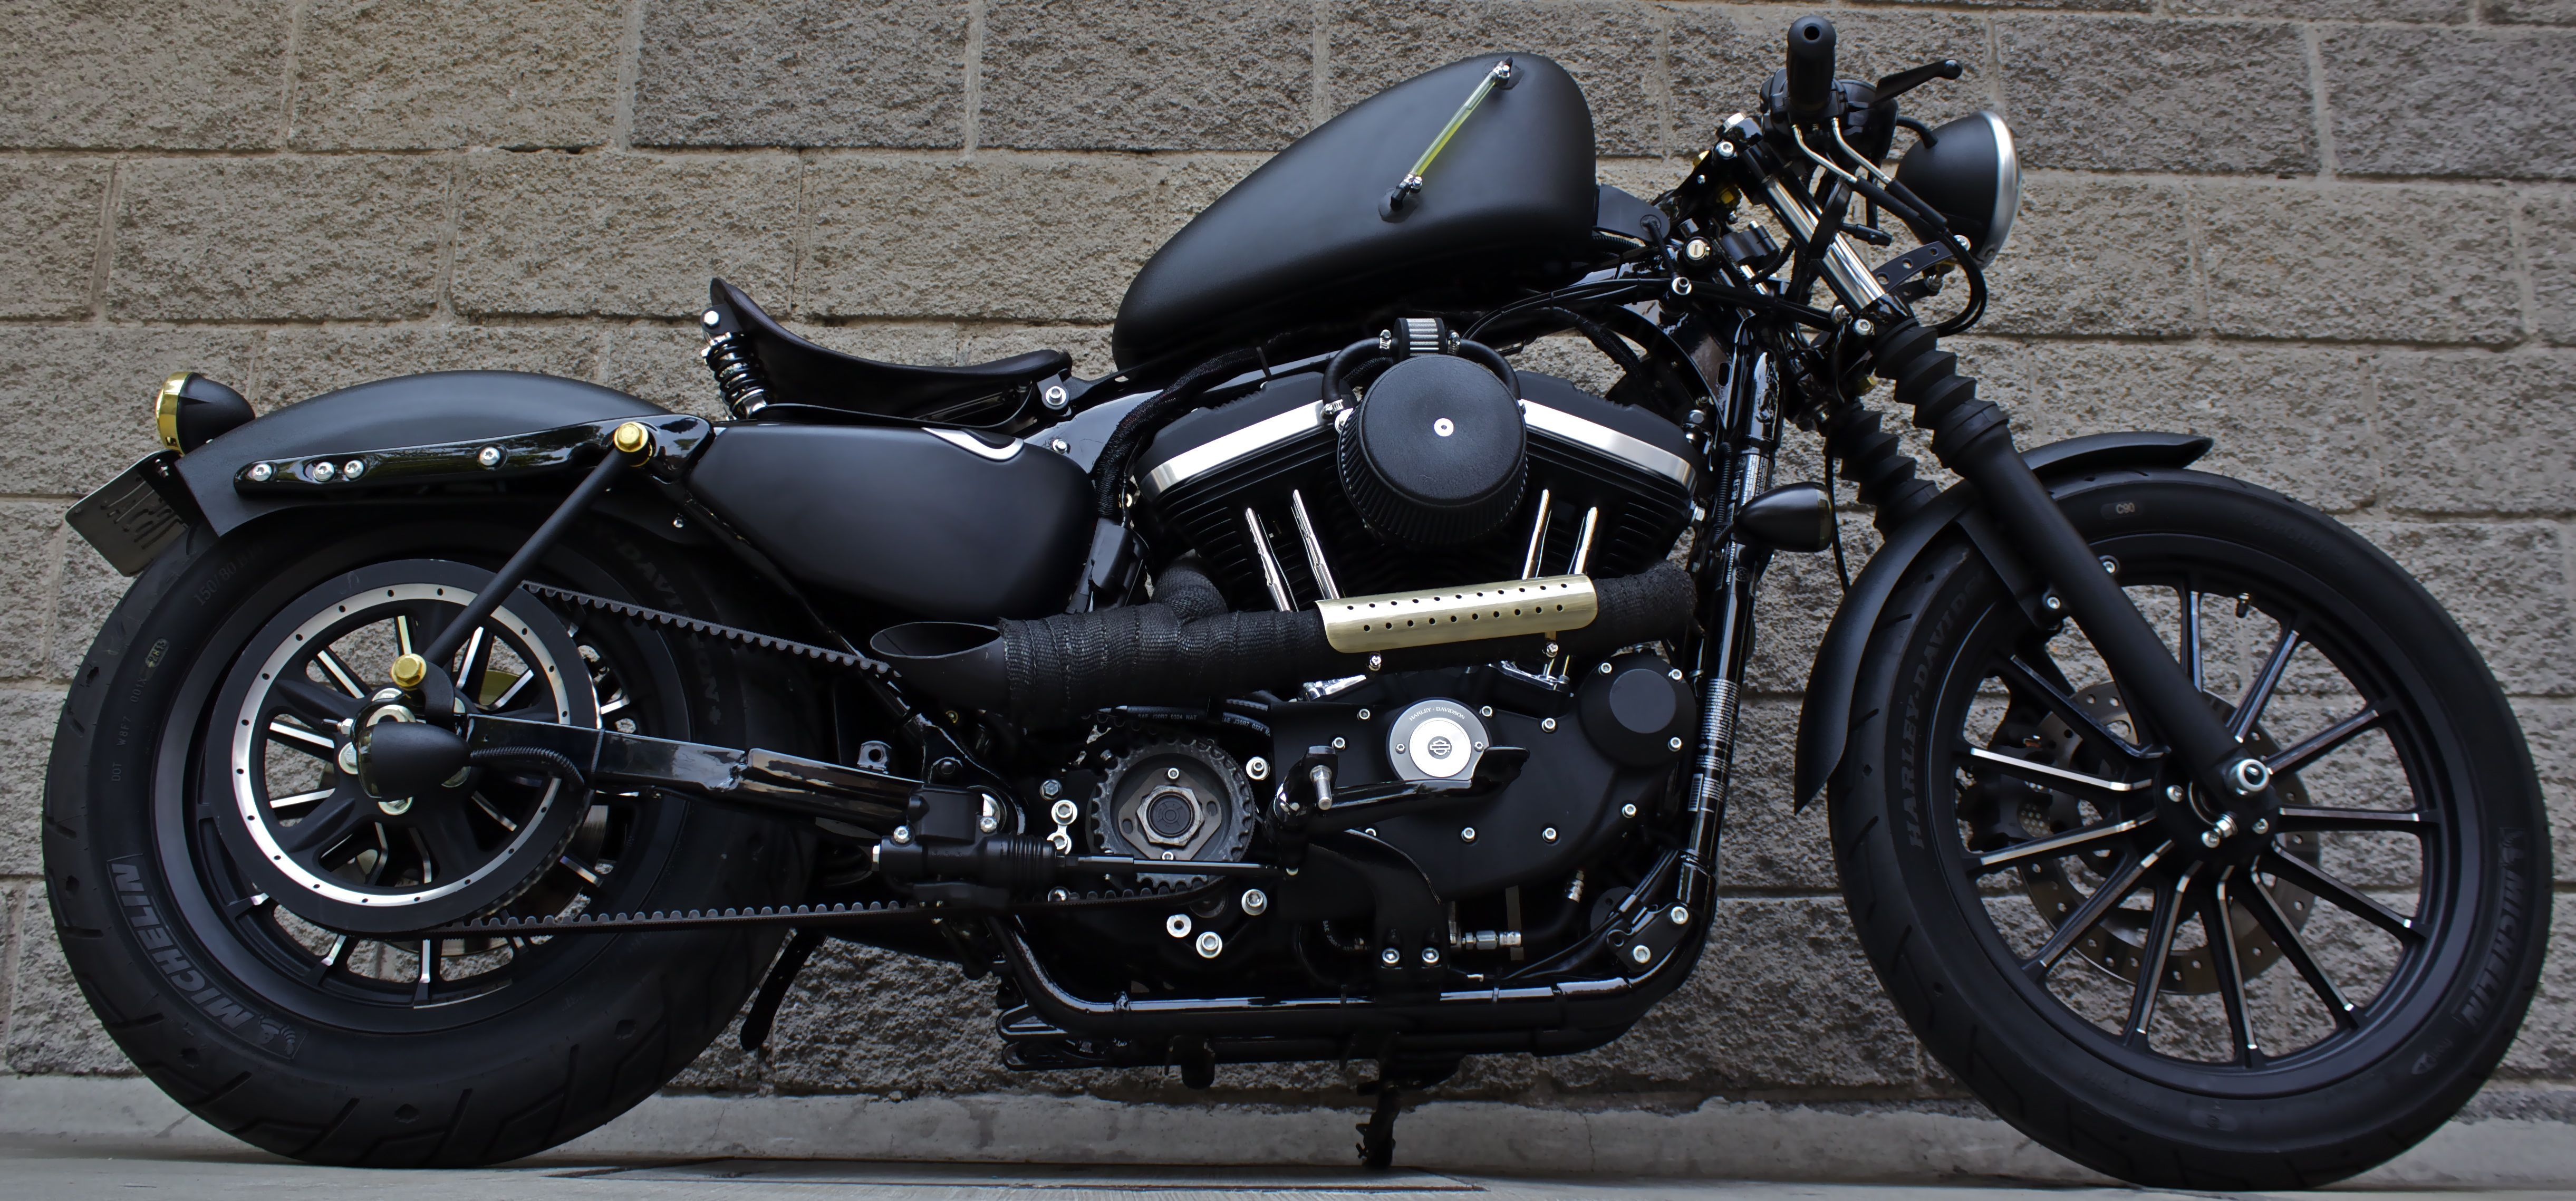 Pin On Bikes Sportsters